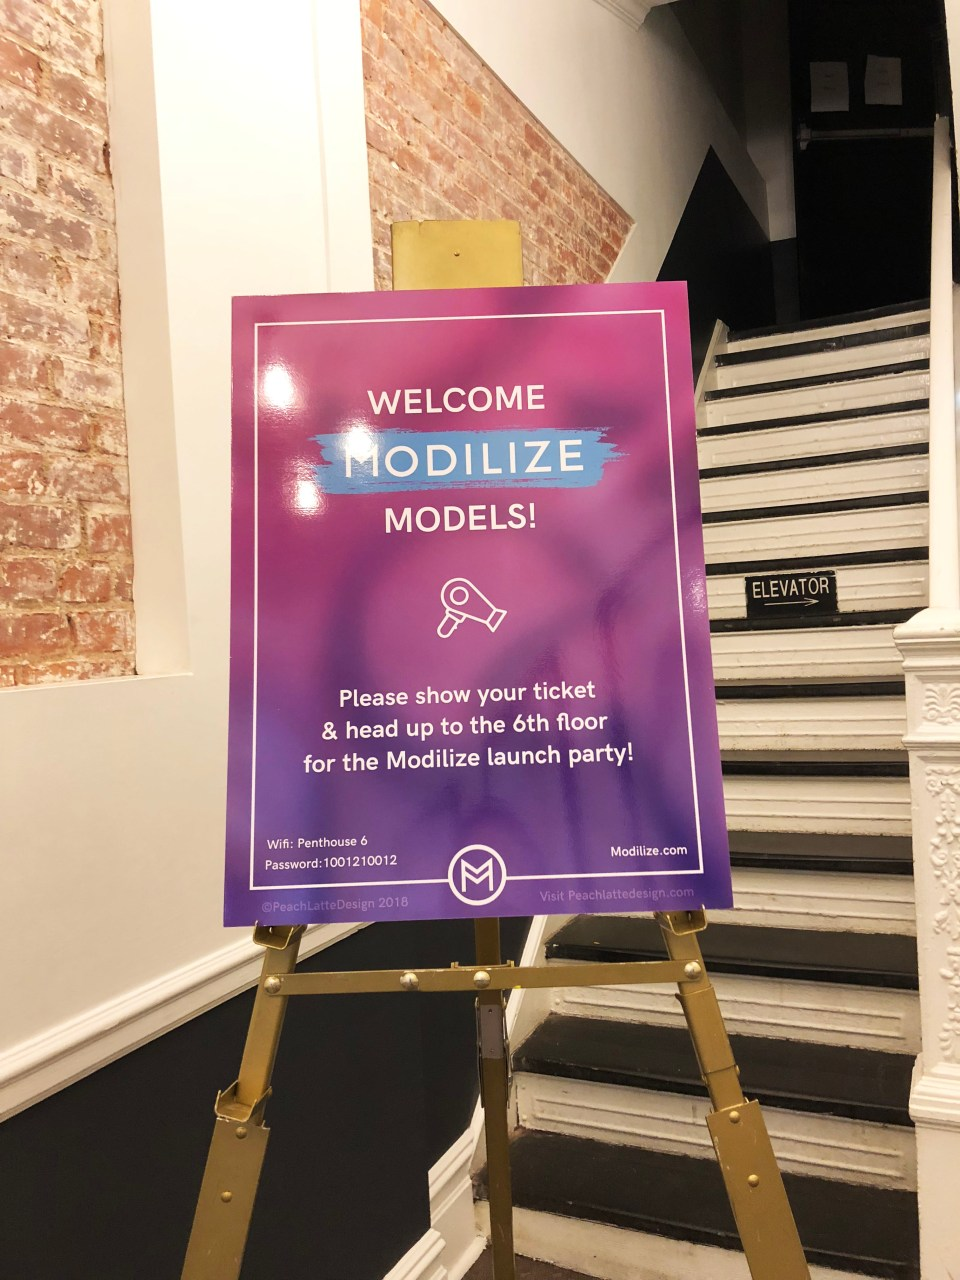 Modilize Launch Party